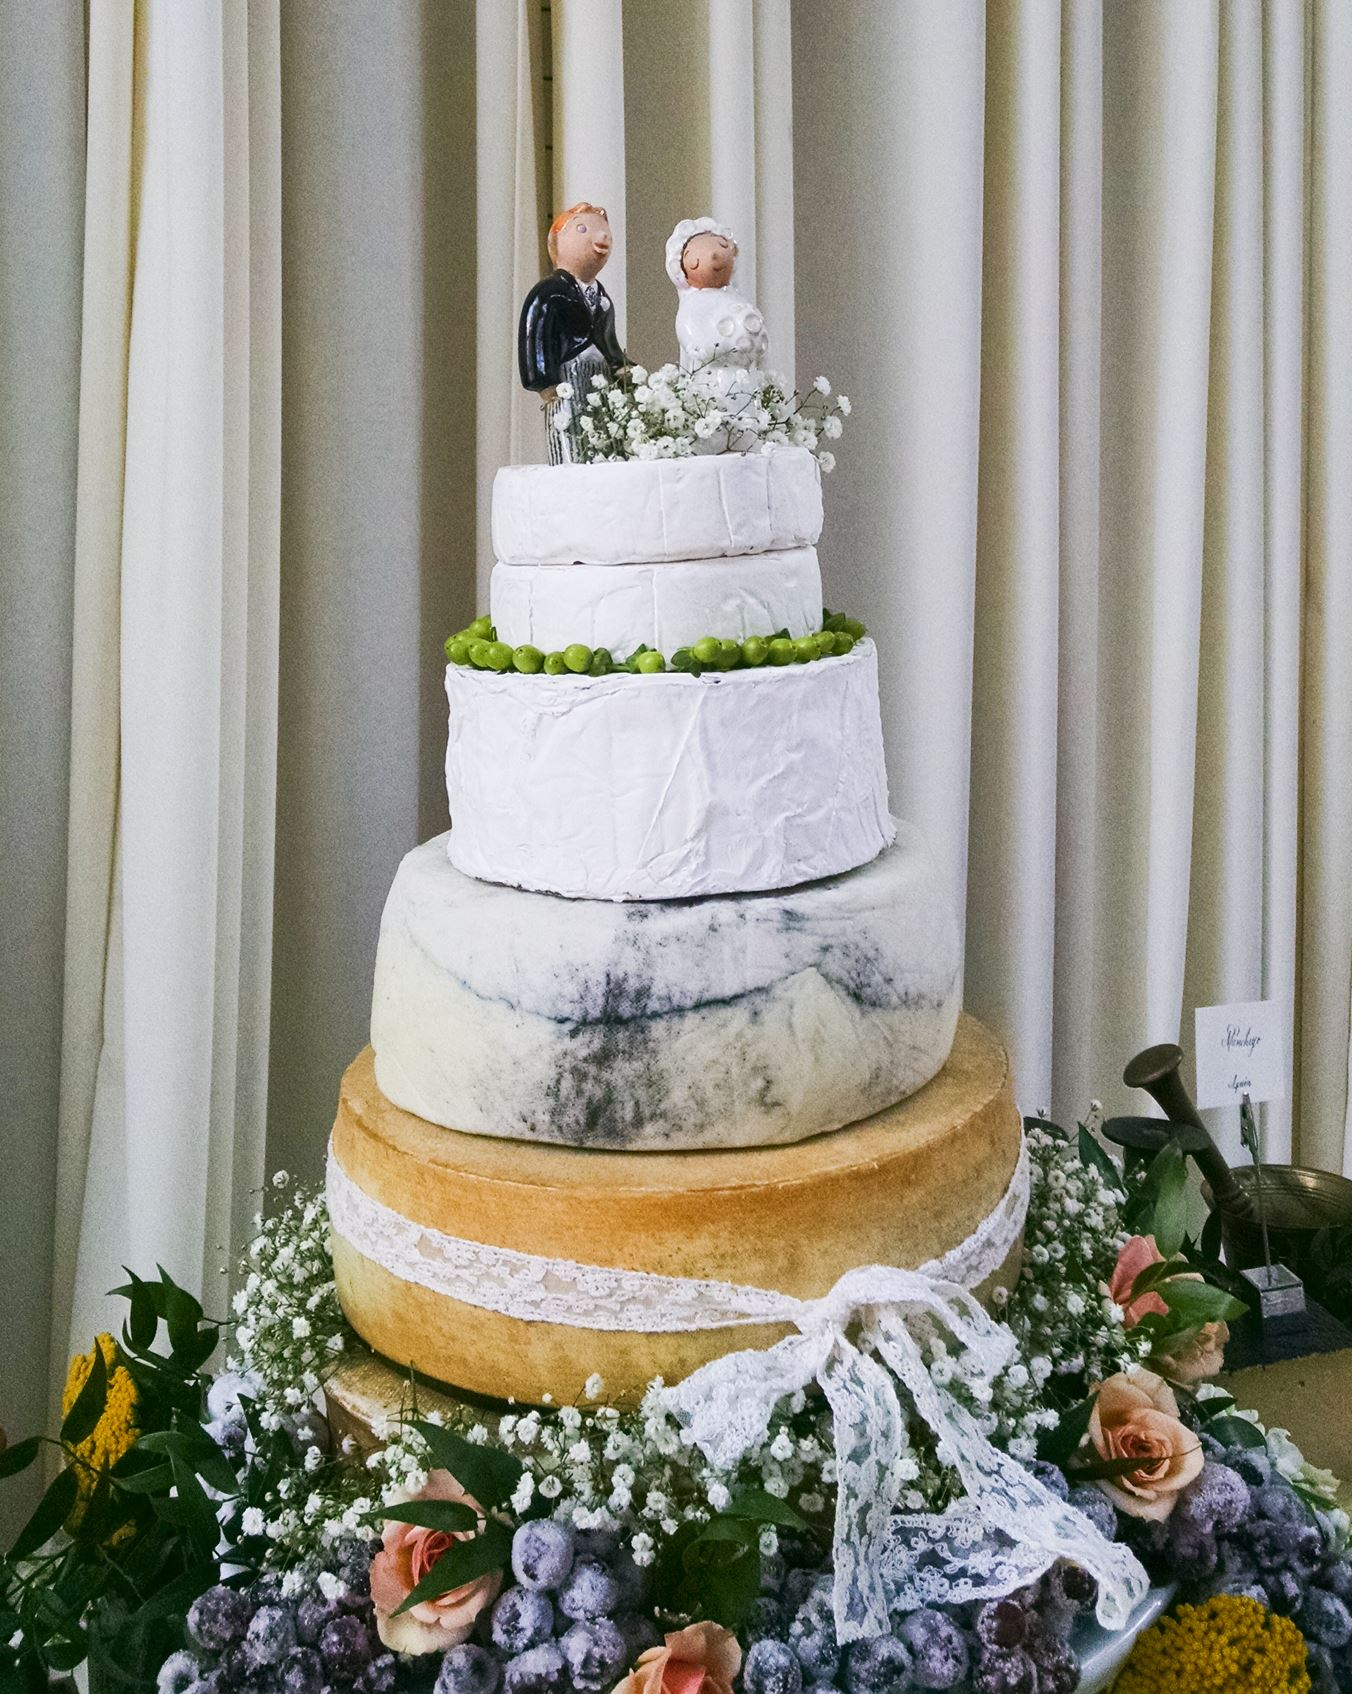 wedding cakes made from cheesecake wedding cheesecakes made with real cheese are becoming 24959